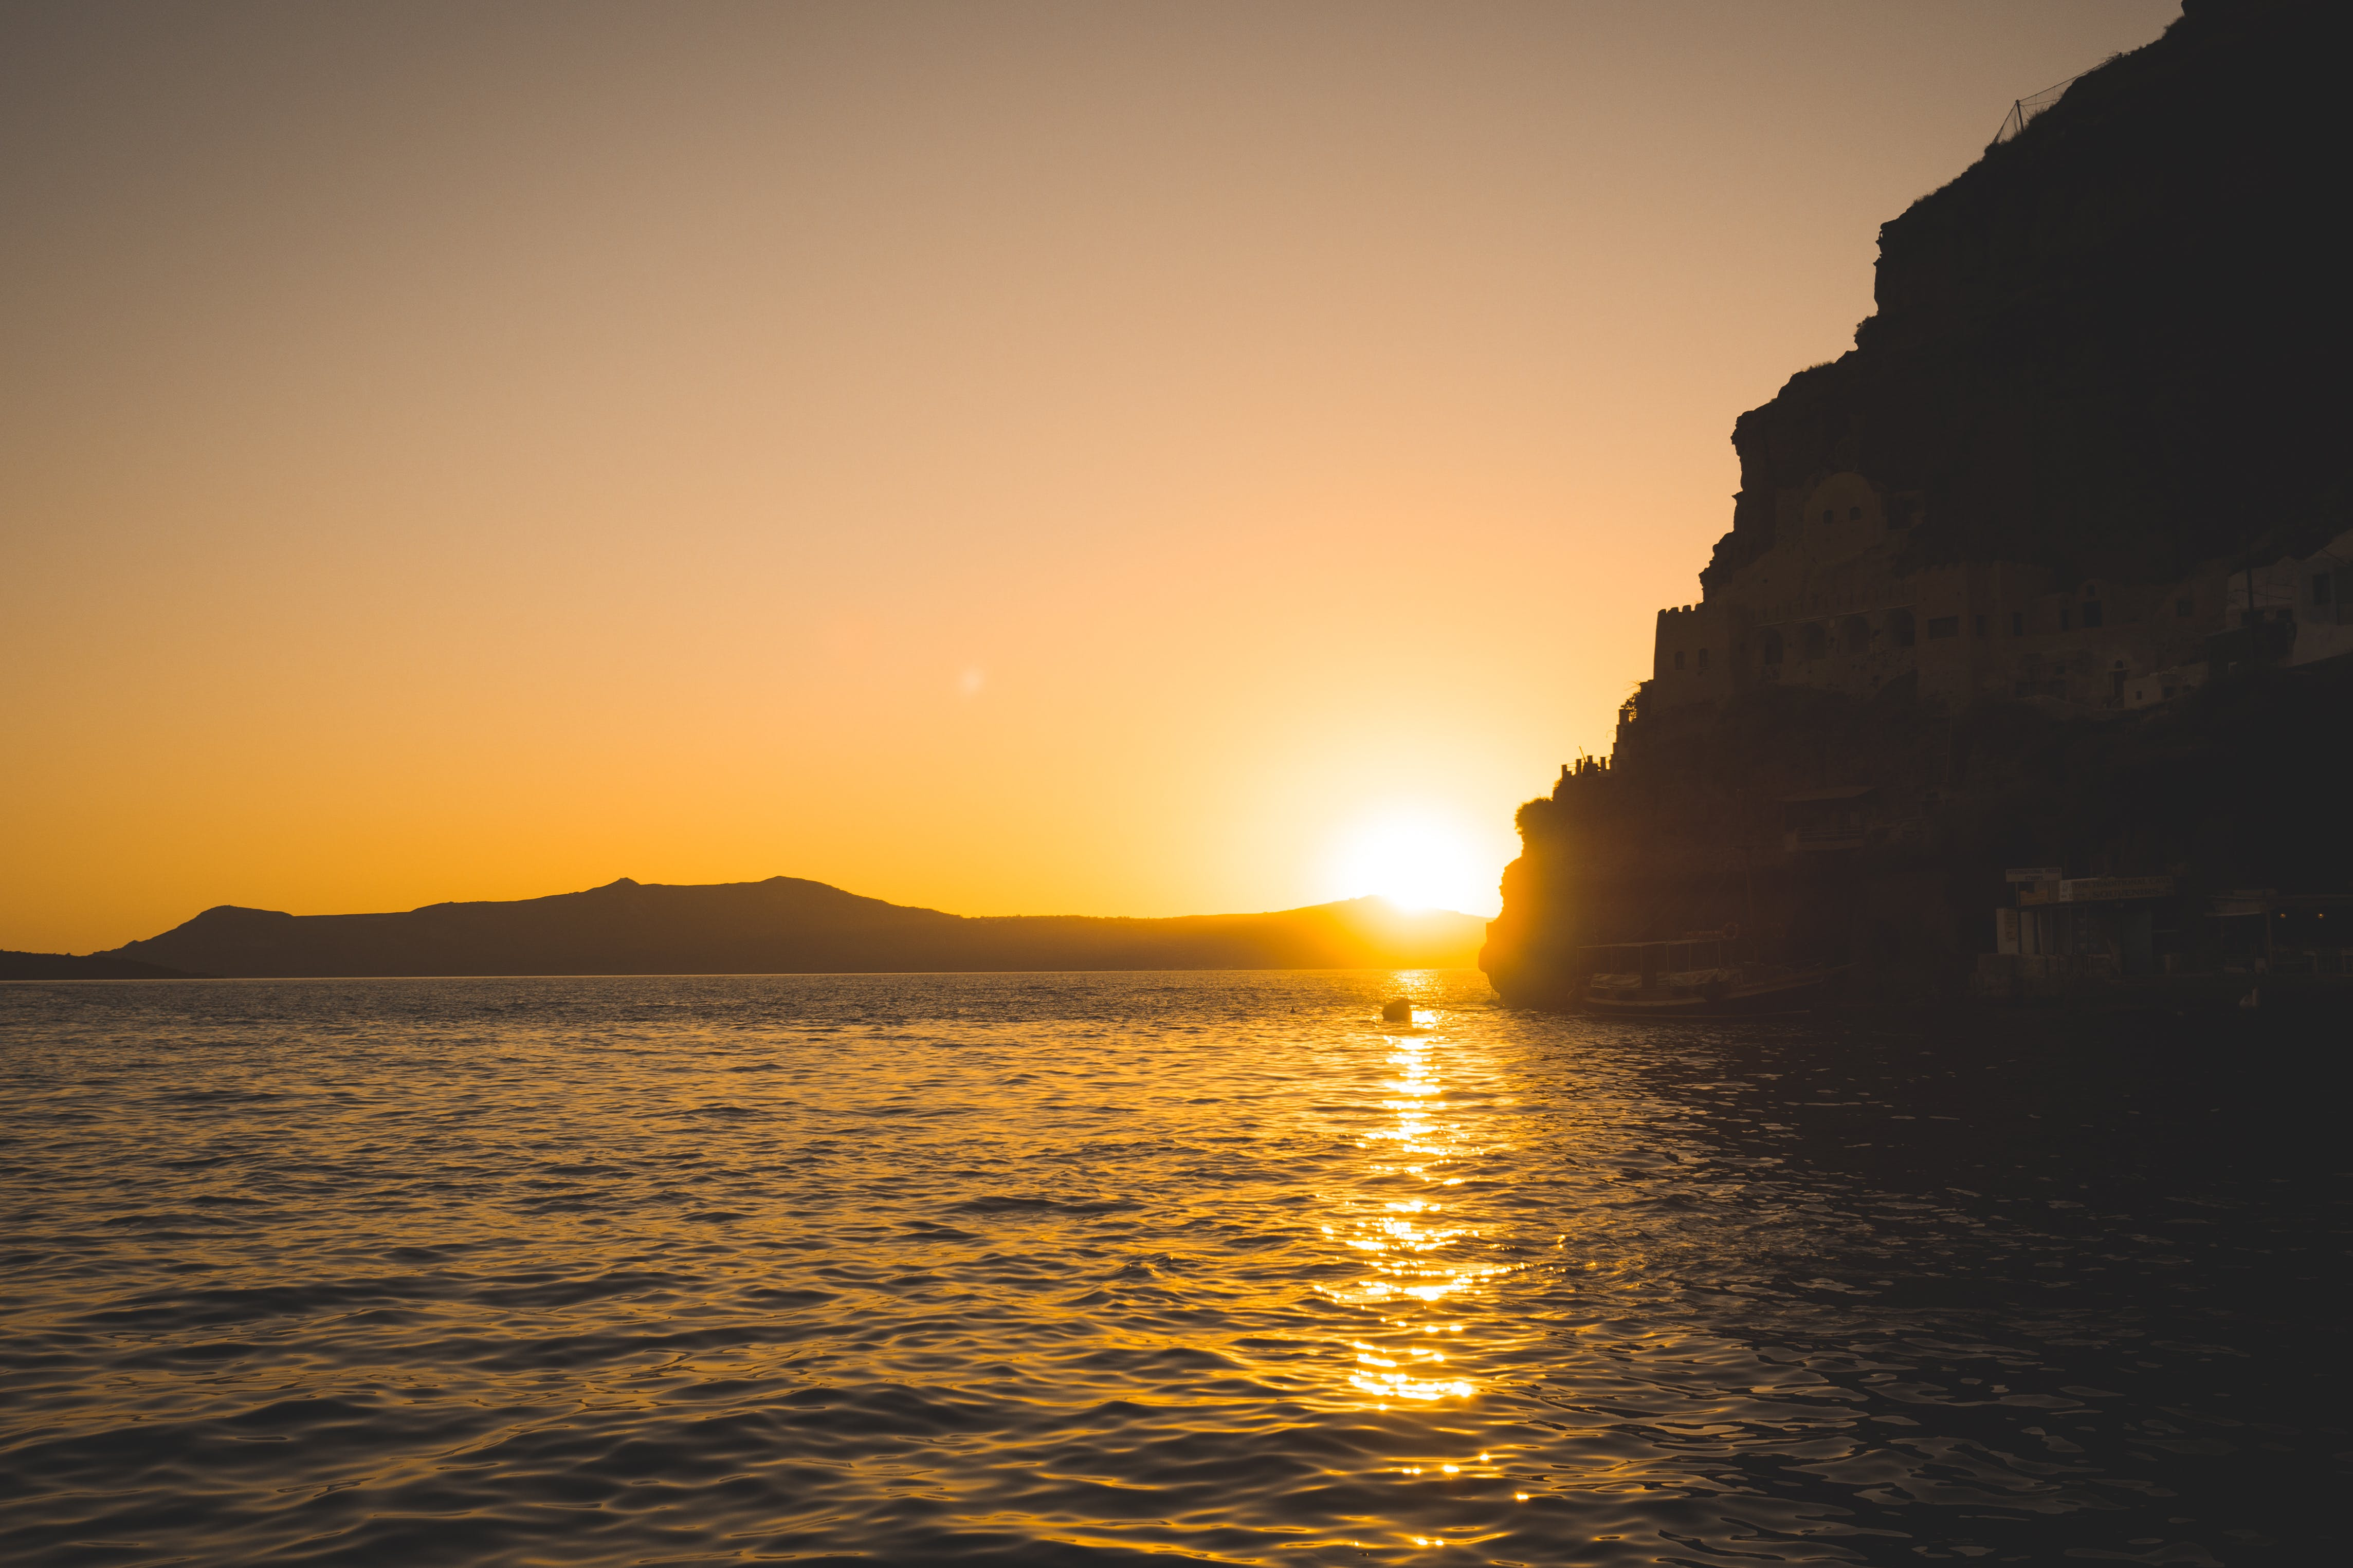 Free stock photo of by the sea, evening, golden, golden sun